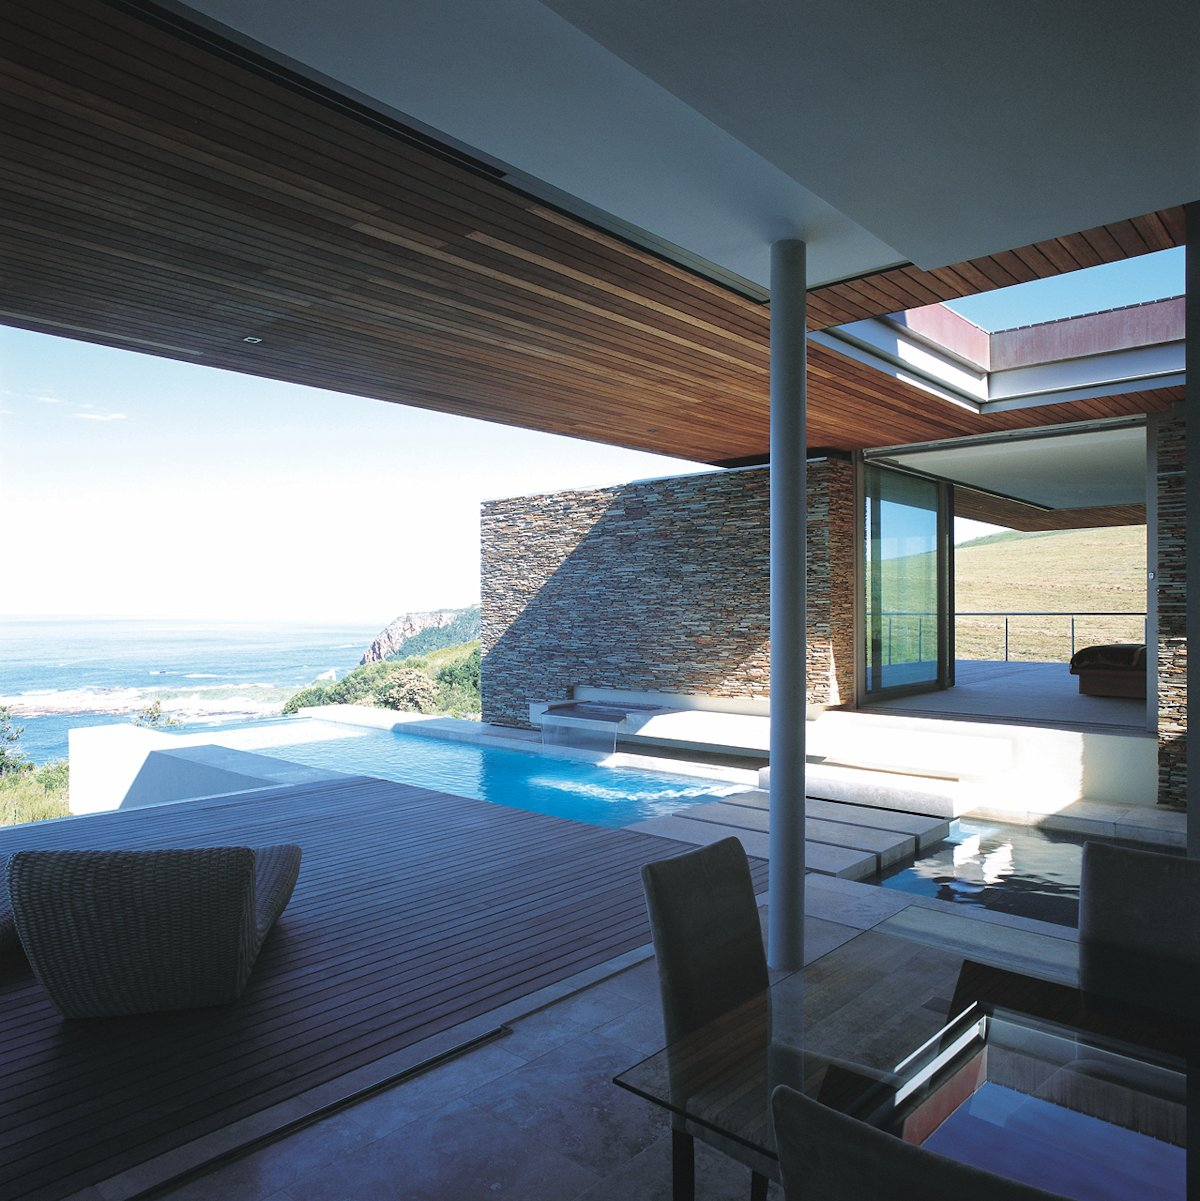 Glass Dining Table, Deck, Pool, Cliff Top Home in Knyzna, South Africa